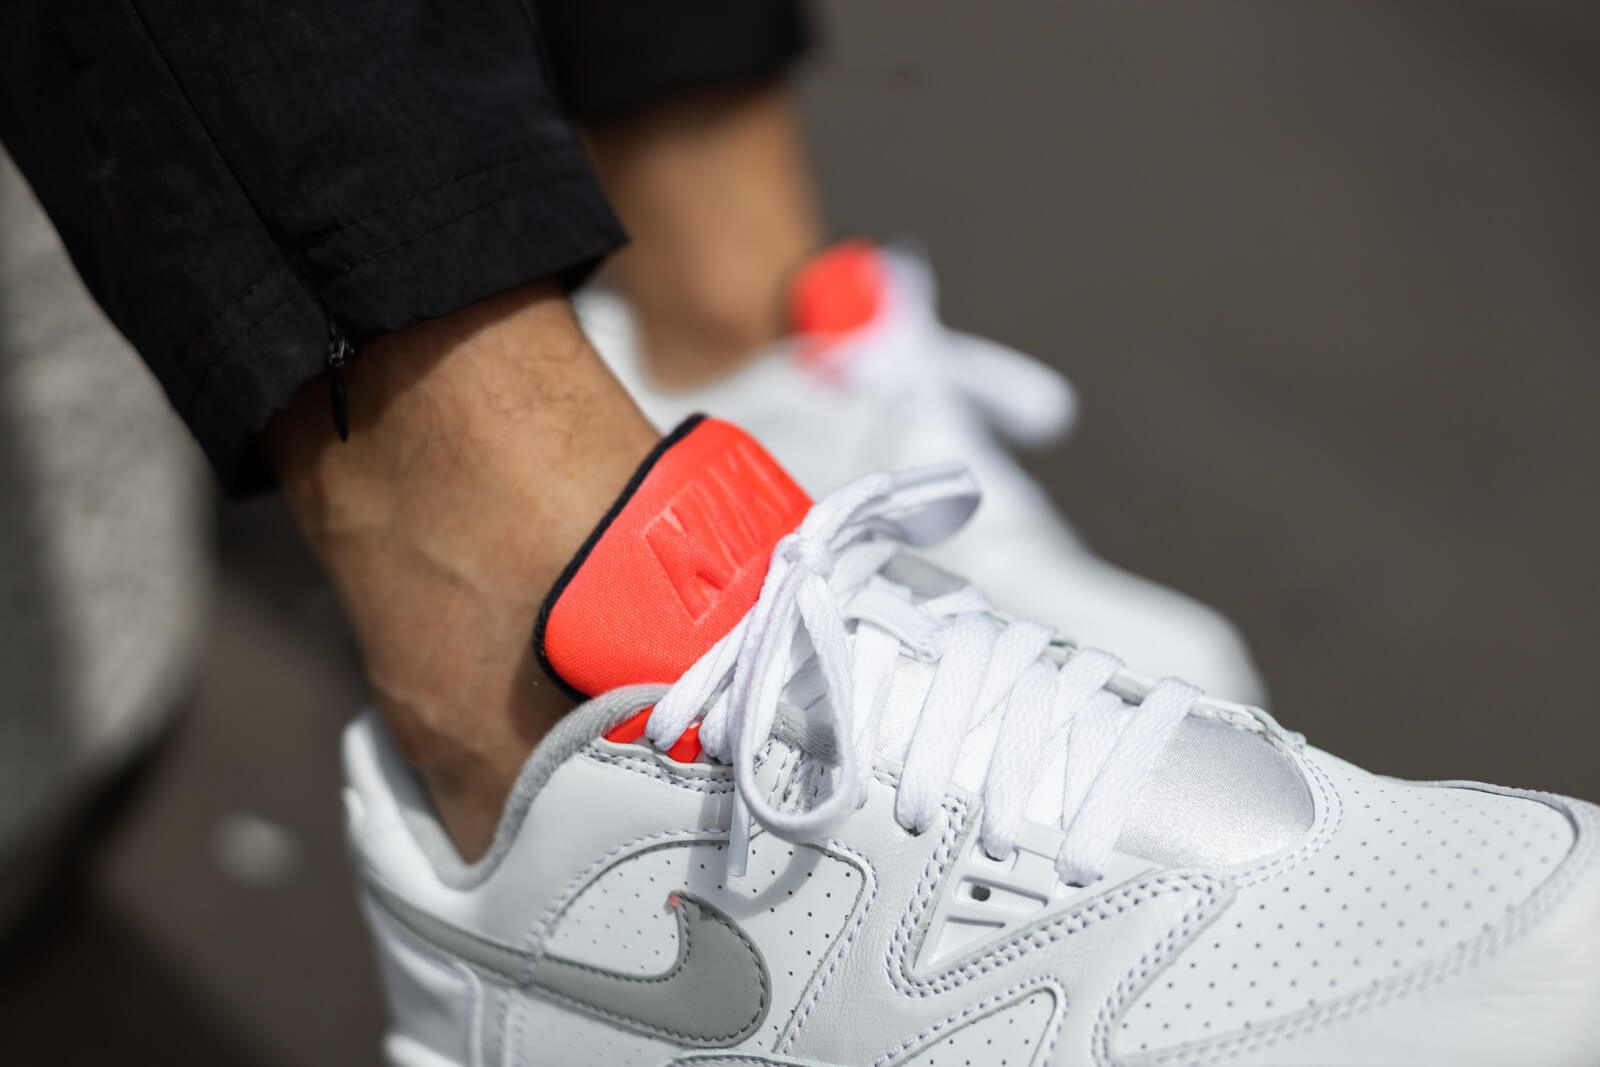 Nike Air Cross Trainer 3 Low WhiteLT Smoke Grey Bright Crimson CN0924 101